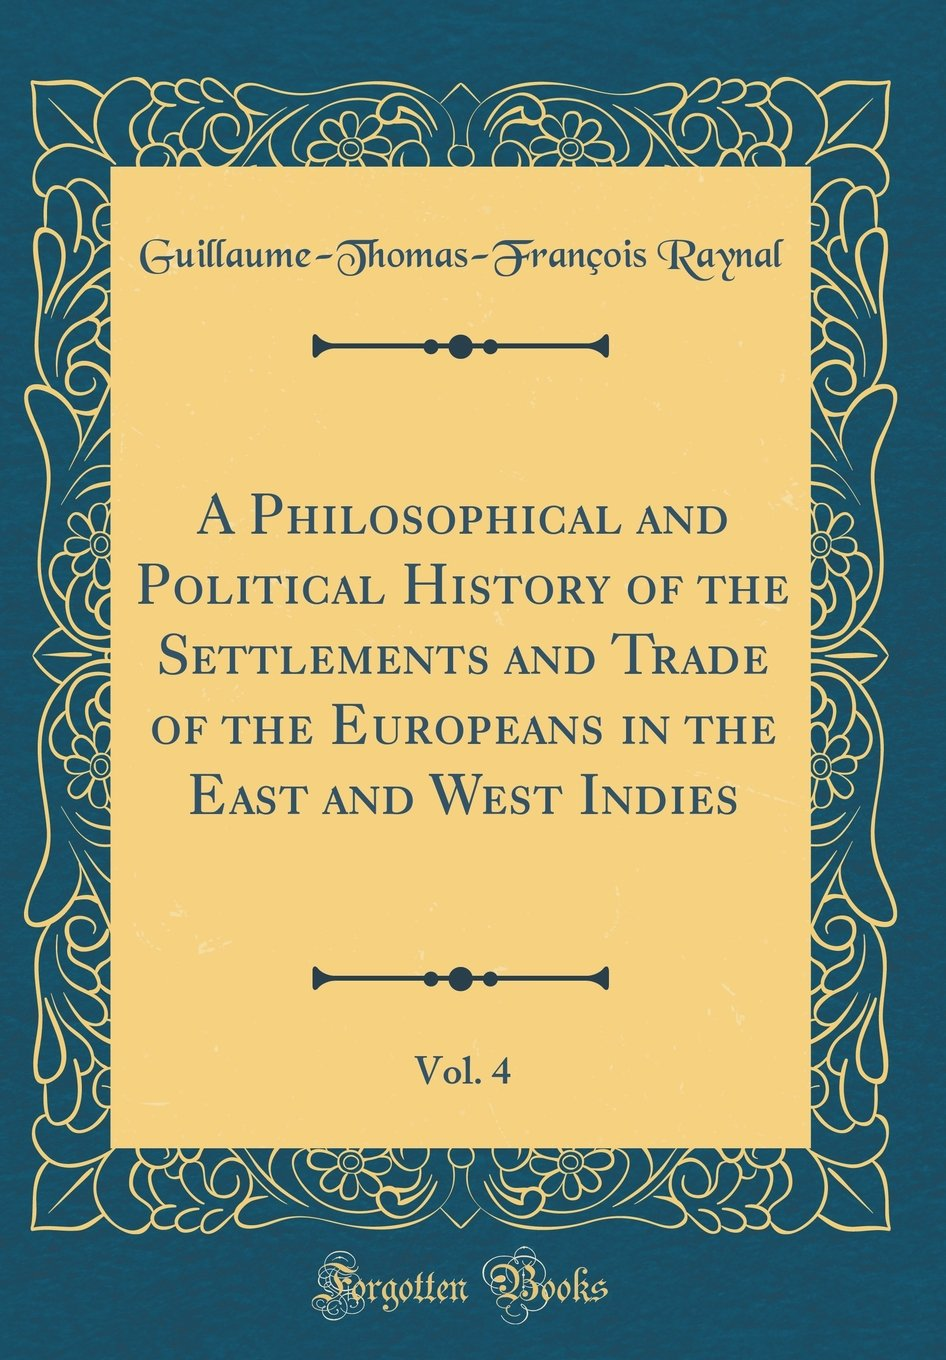 Read Online A Philosophical and Political History of the Settlements and Trade of the Europeans in the East and West Indies, Vol. 4 (Classic Reprint) ebook